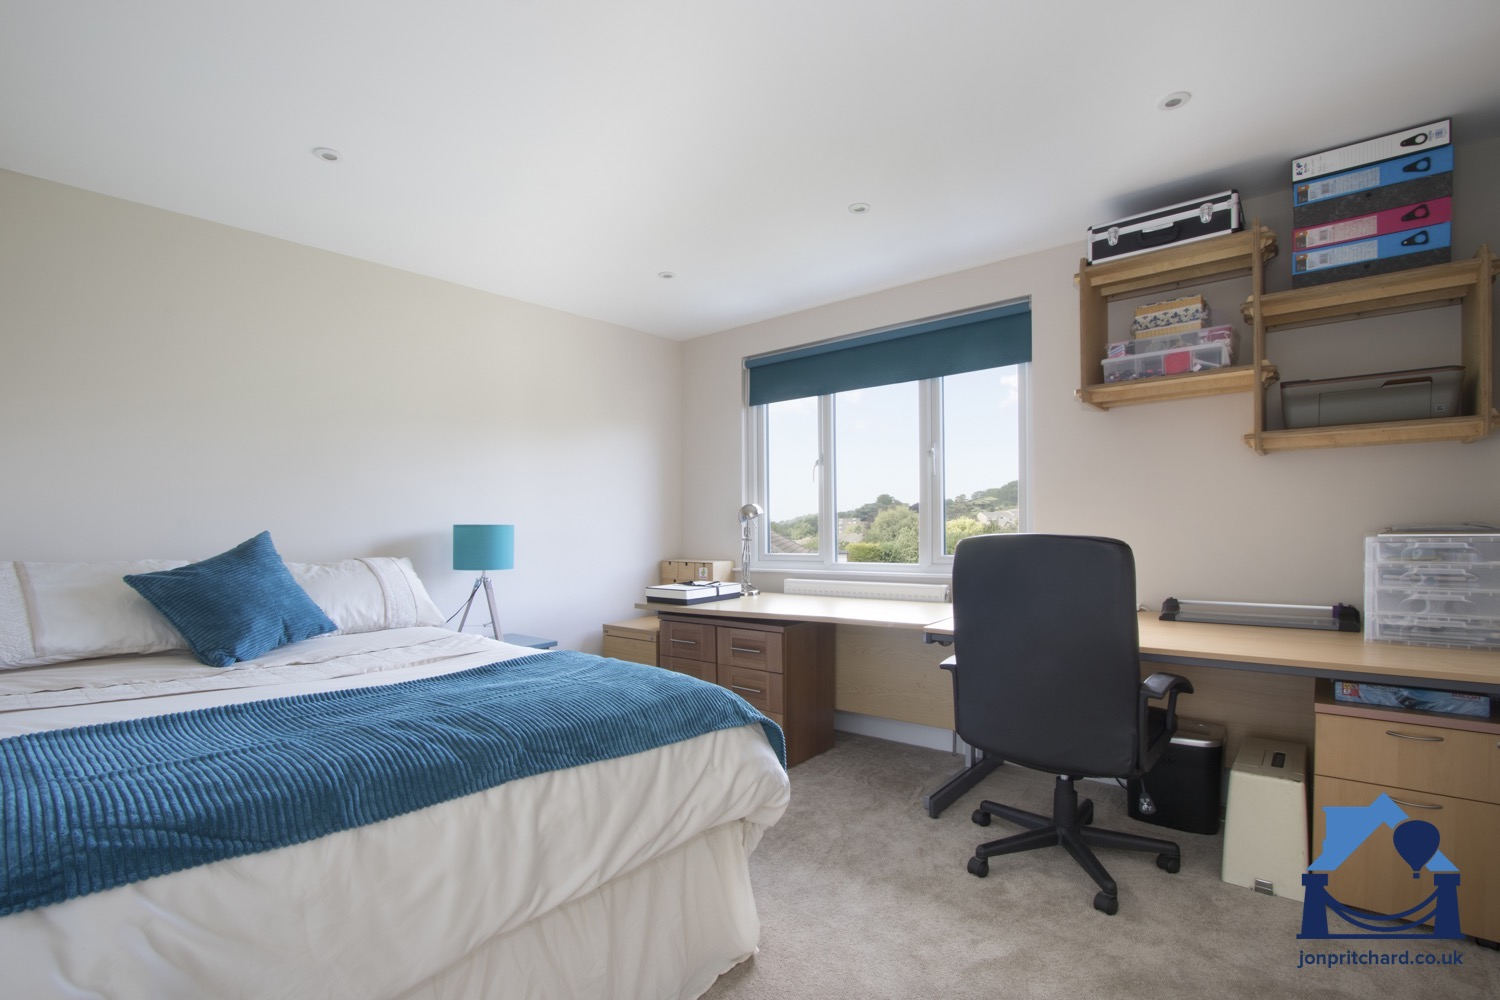 Loft bedroom with long desk and office furniture along the wall with window